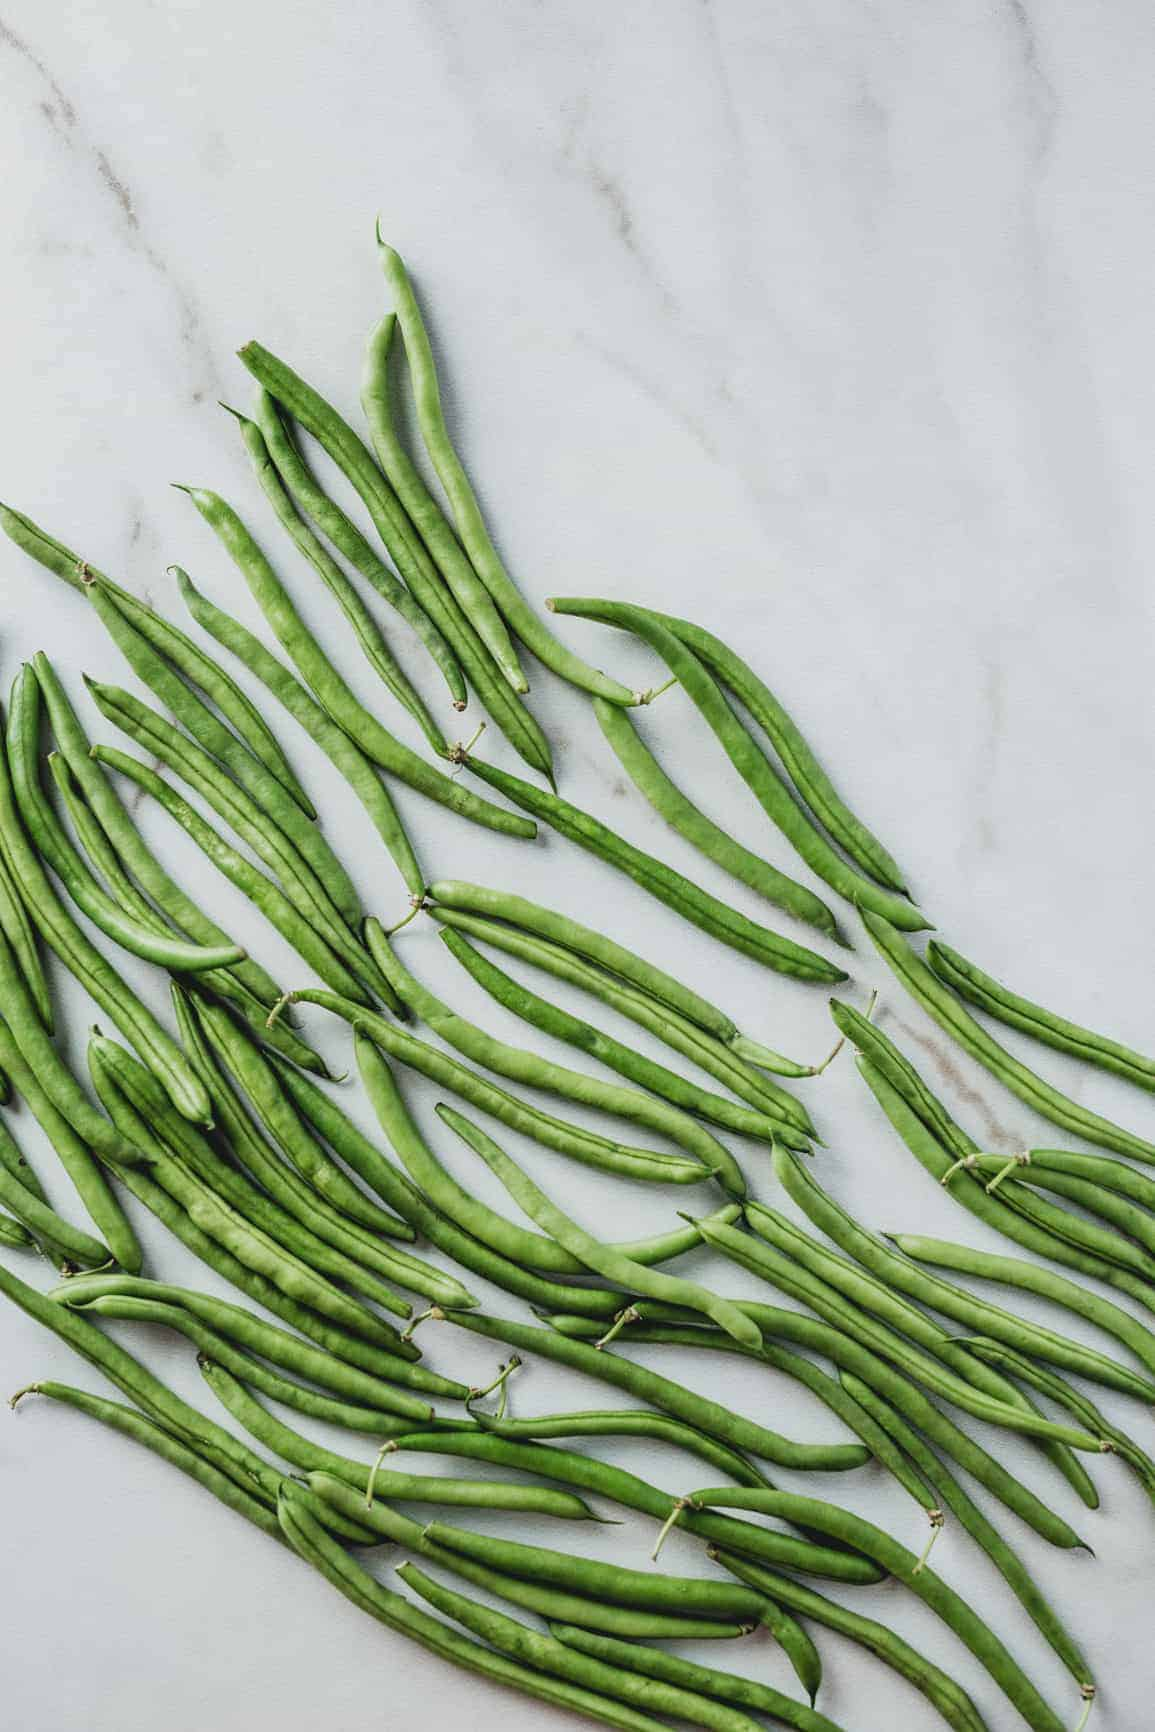 Green beans on a marble background